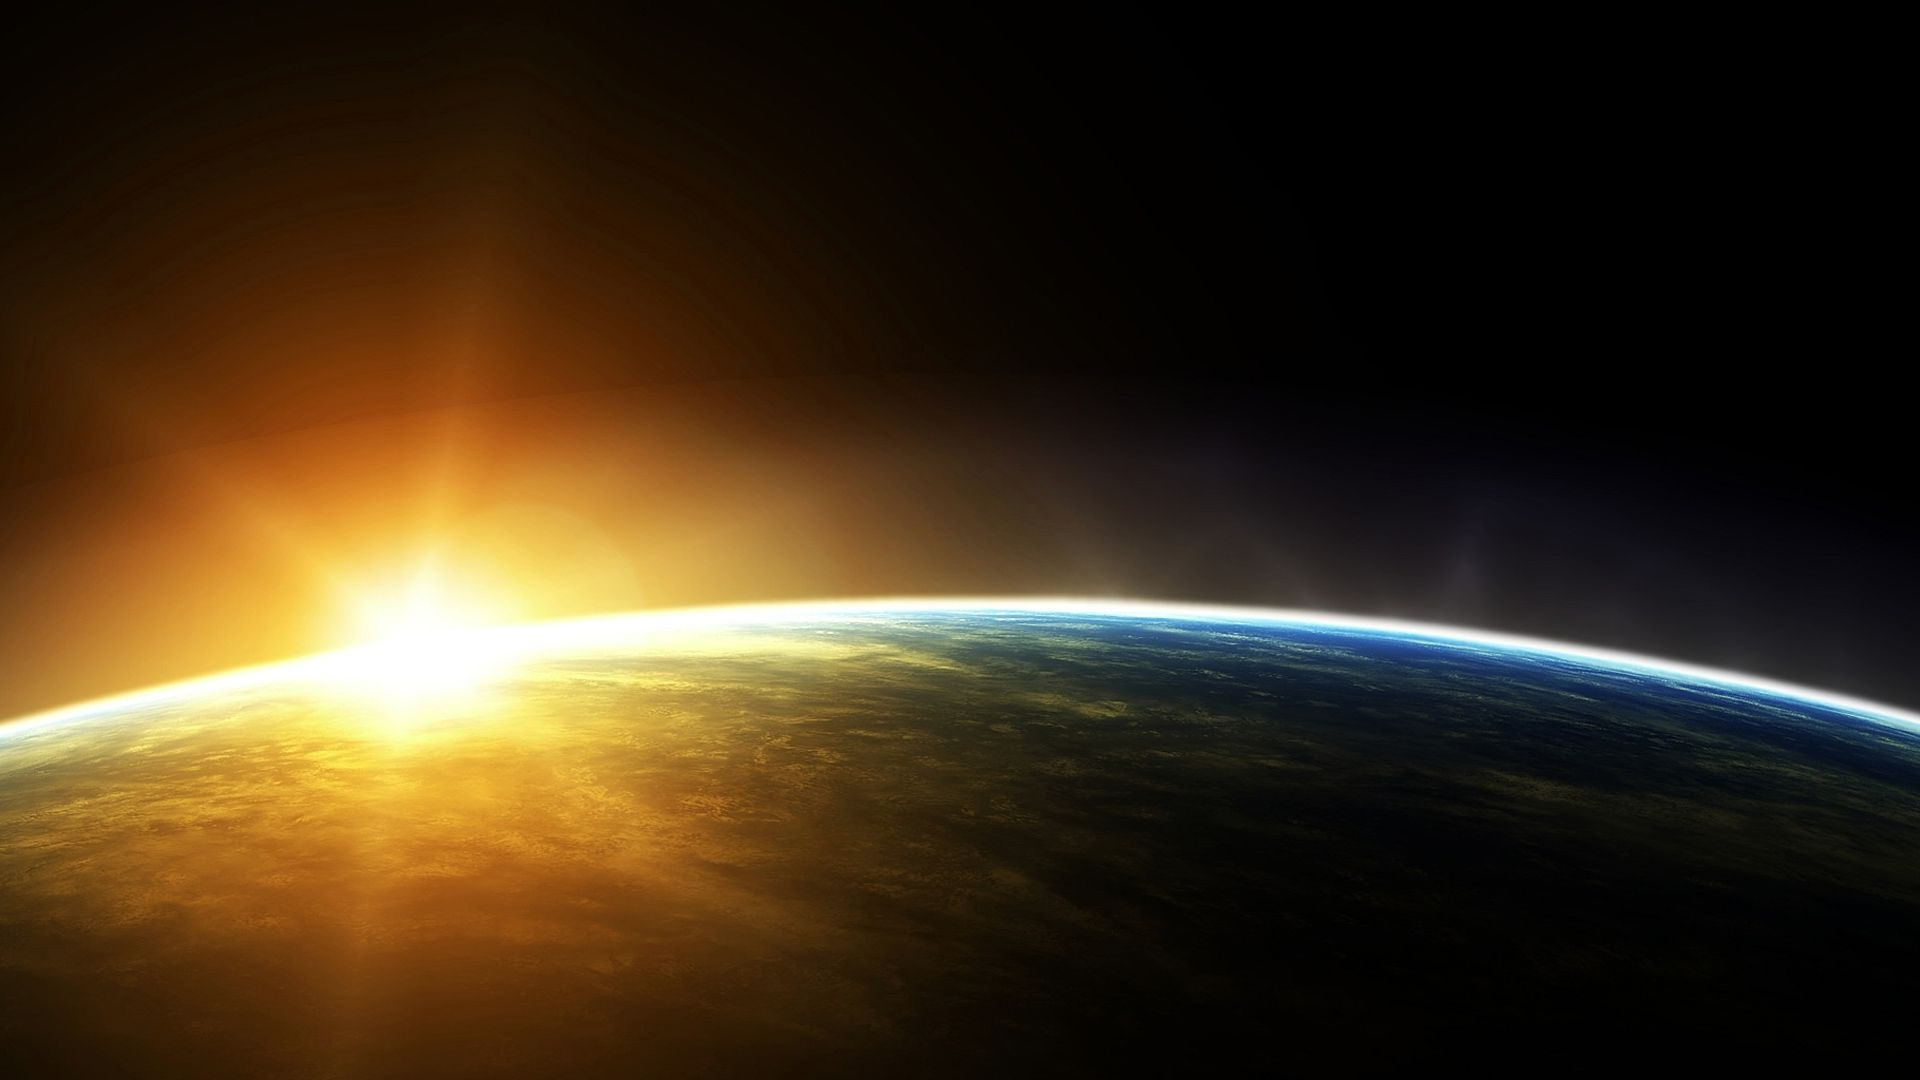 Nasa Space Earth Sunrise From Space Nasa Hd Wallpaper Full Hd